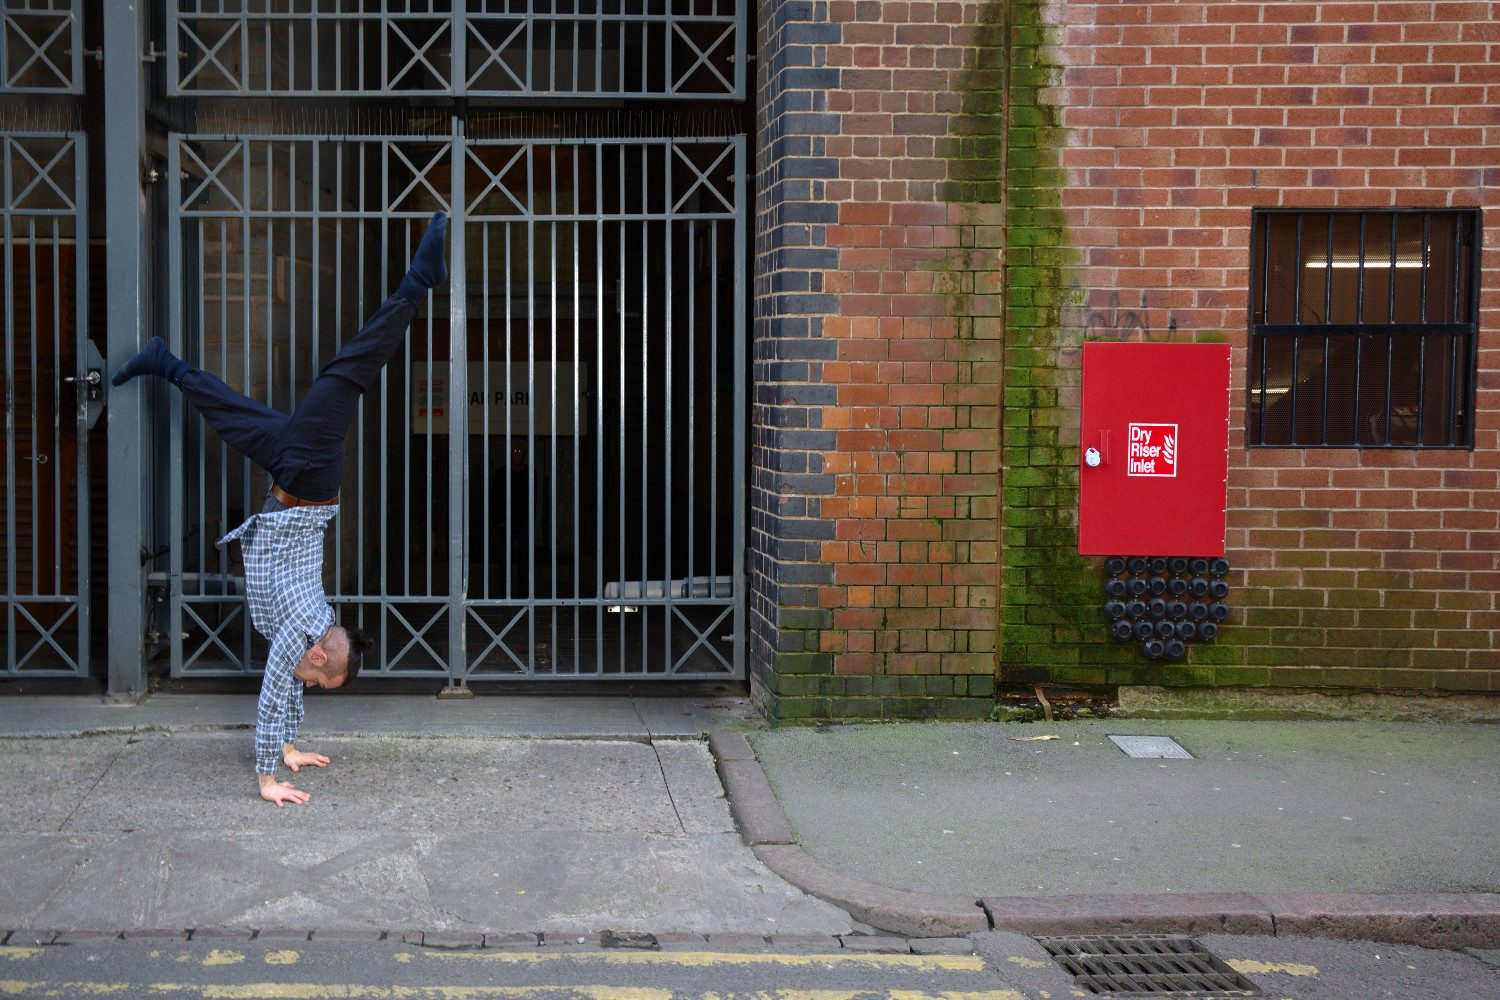 Ian Dolan, man contemporary dancing in the street in front of a gate